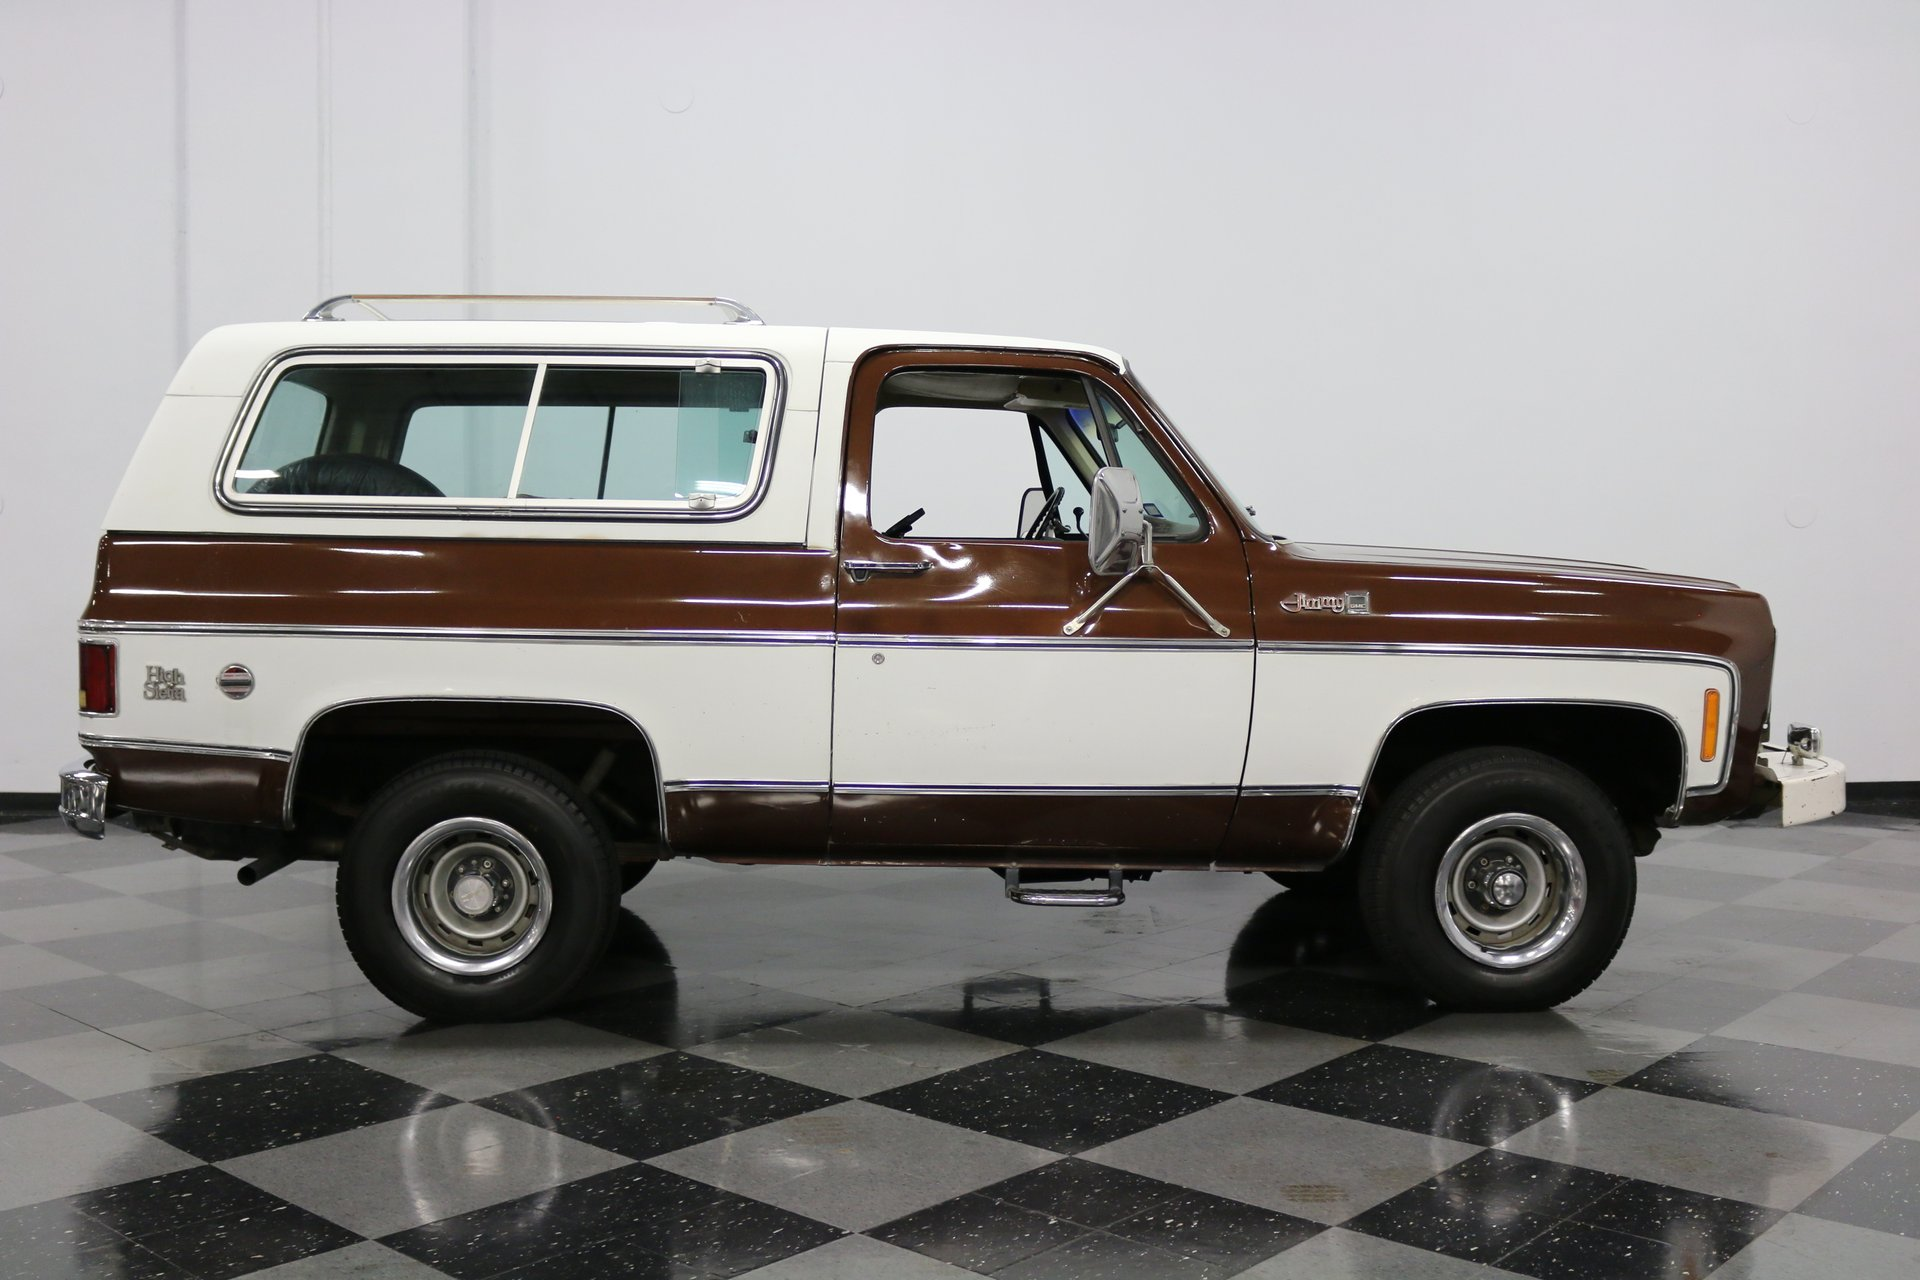 1978 Gmc Jimmy Classic Cars For Sale Streetside Classics The Nation S 1 Consignment Dealer